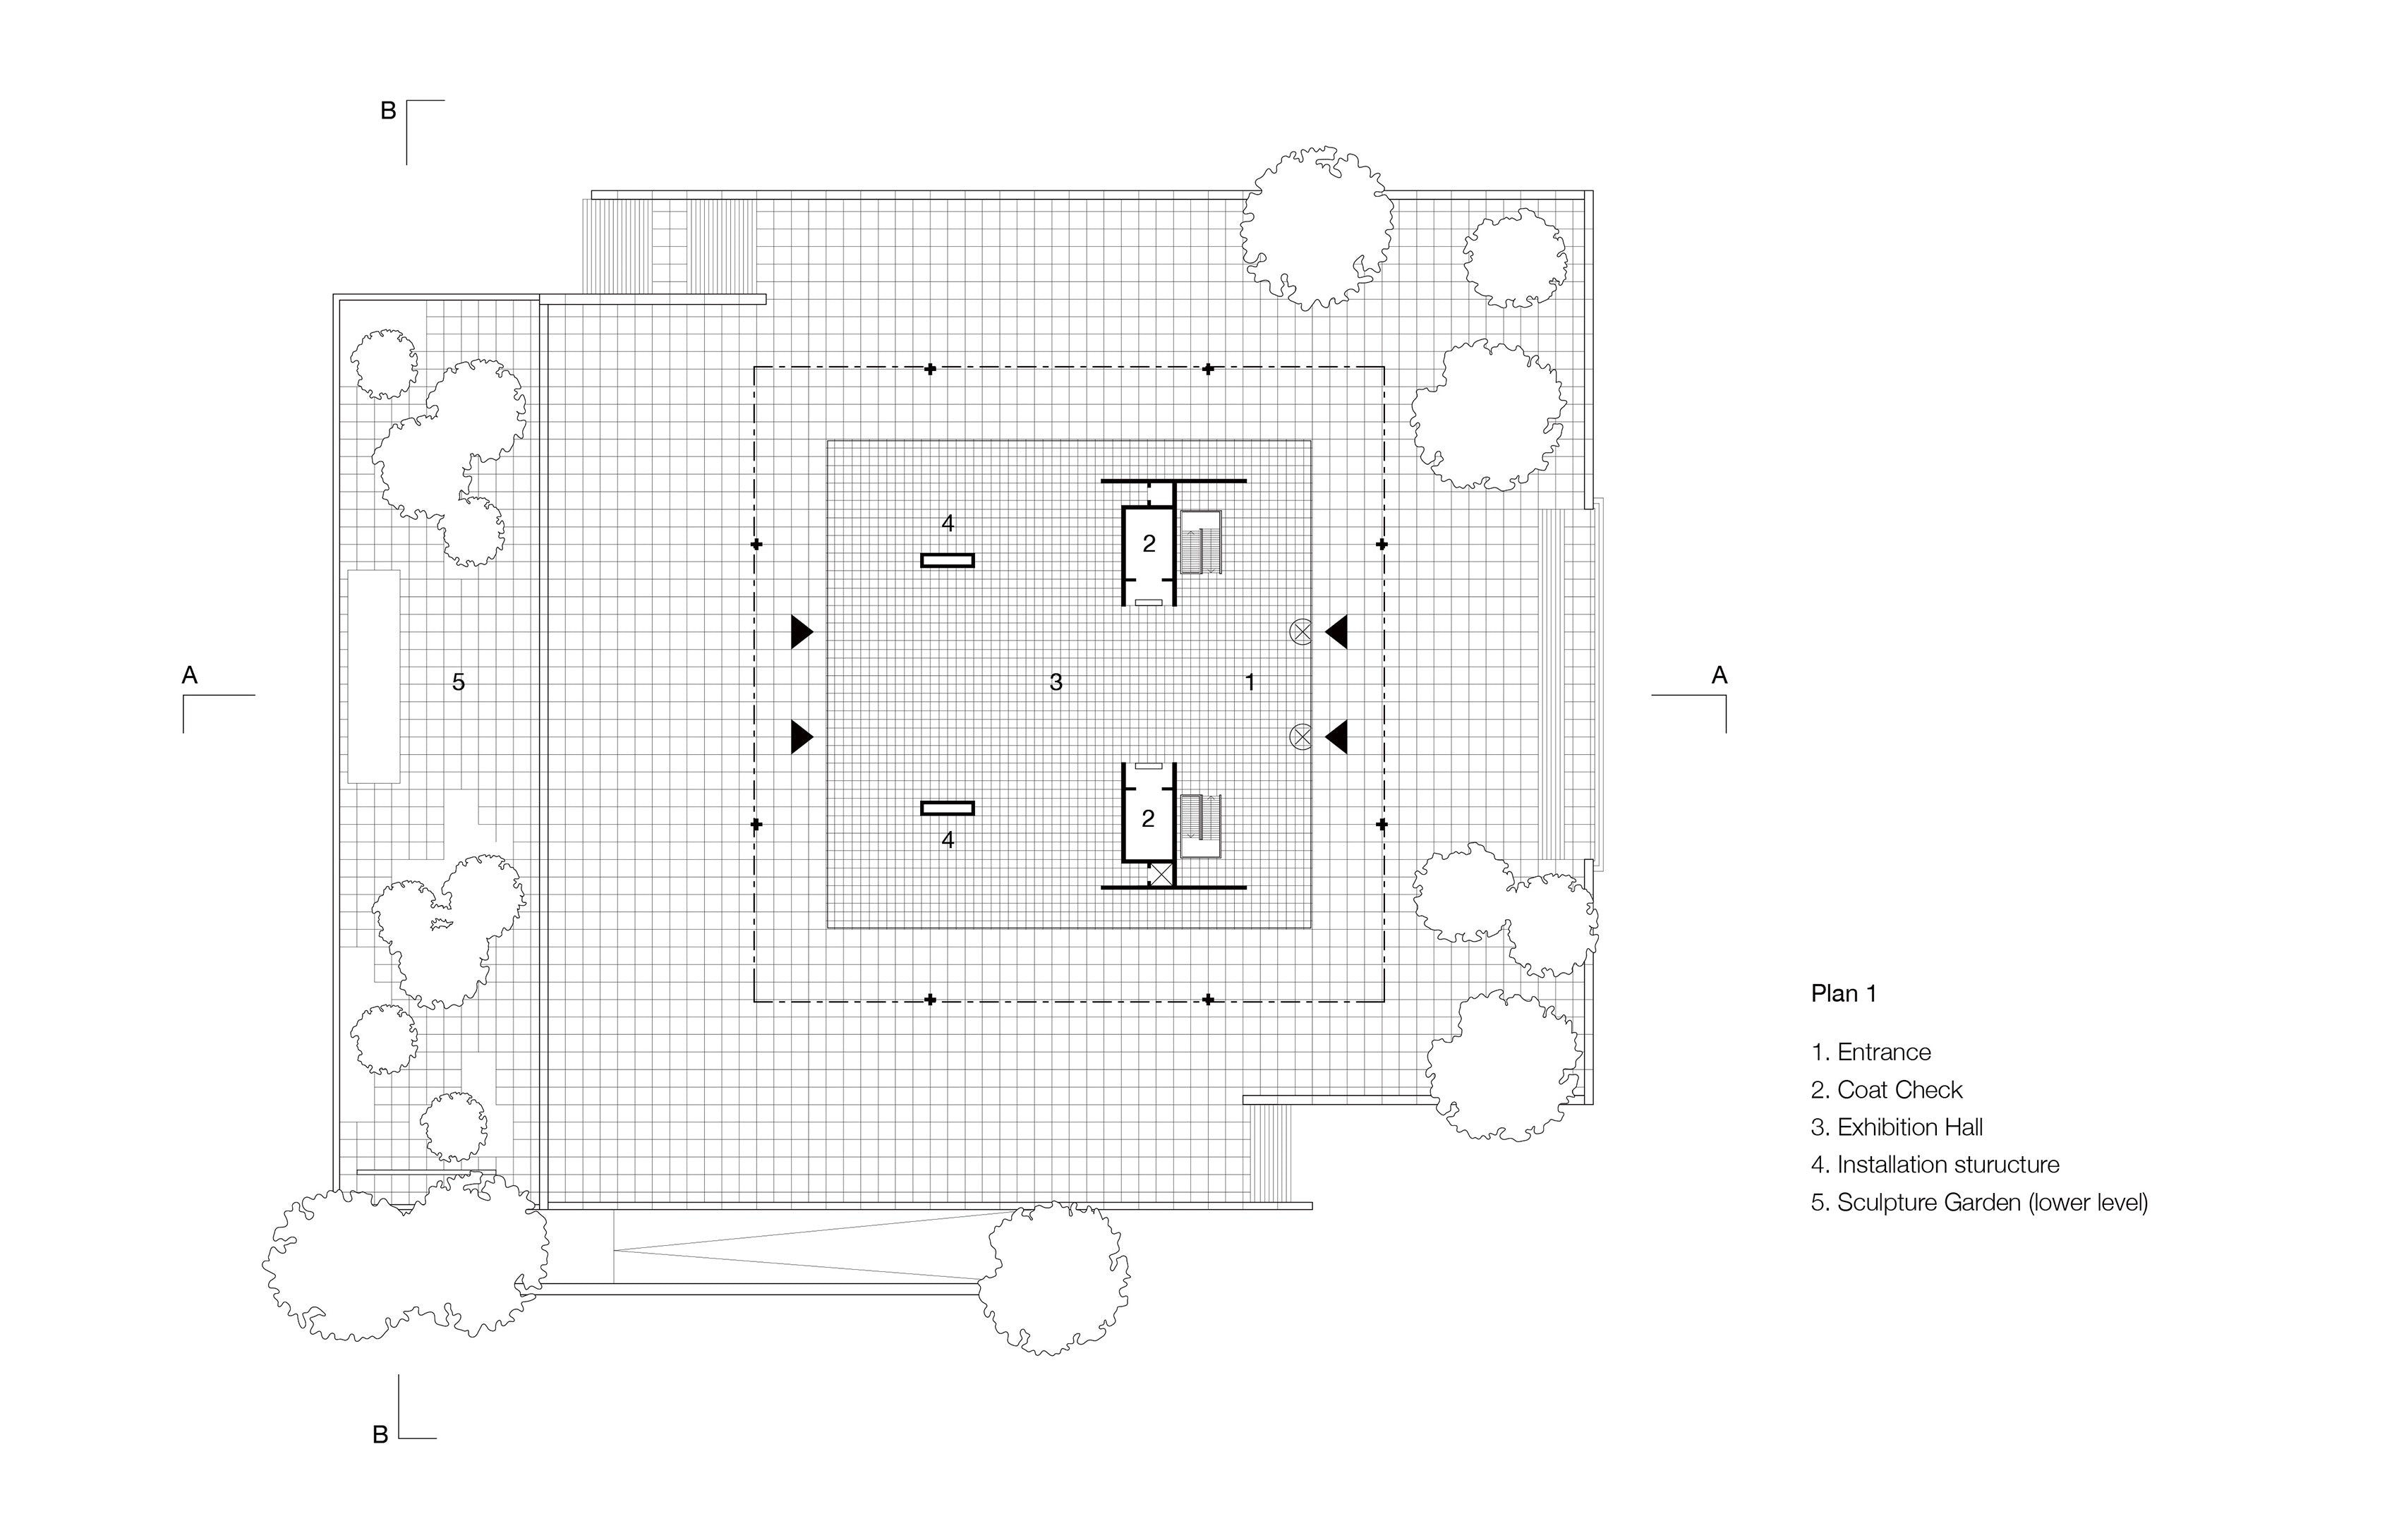 Plan of the Neue National galerie by Ludwig Mies van der Rohe